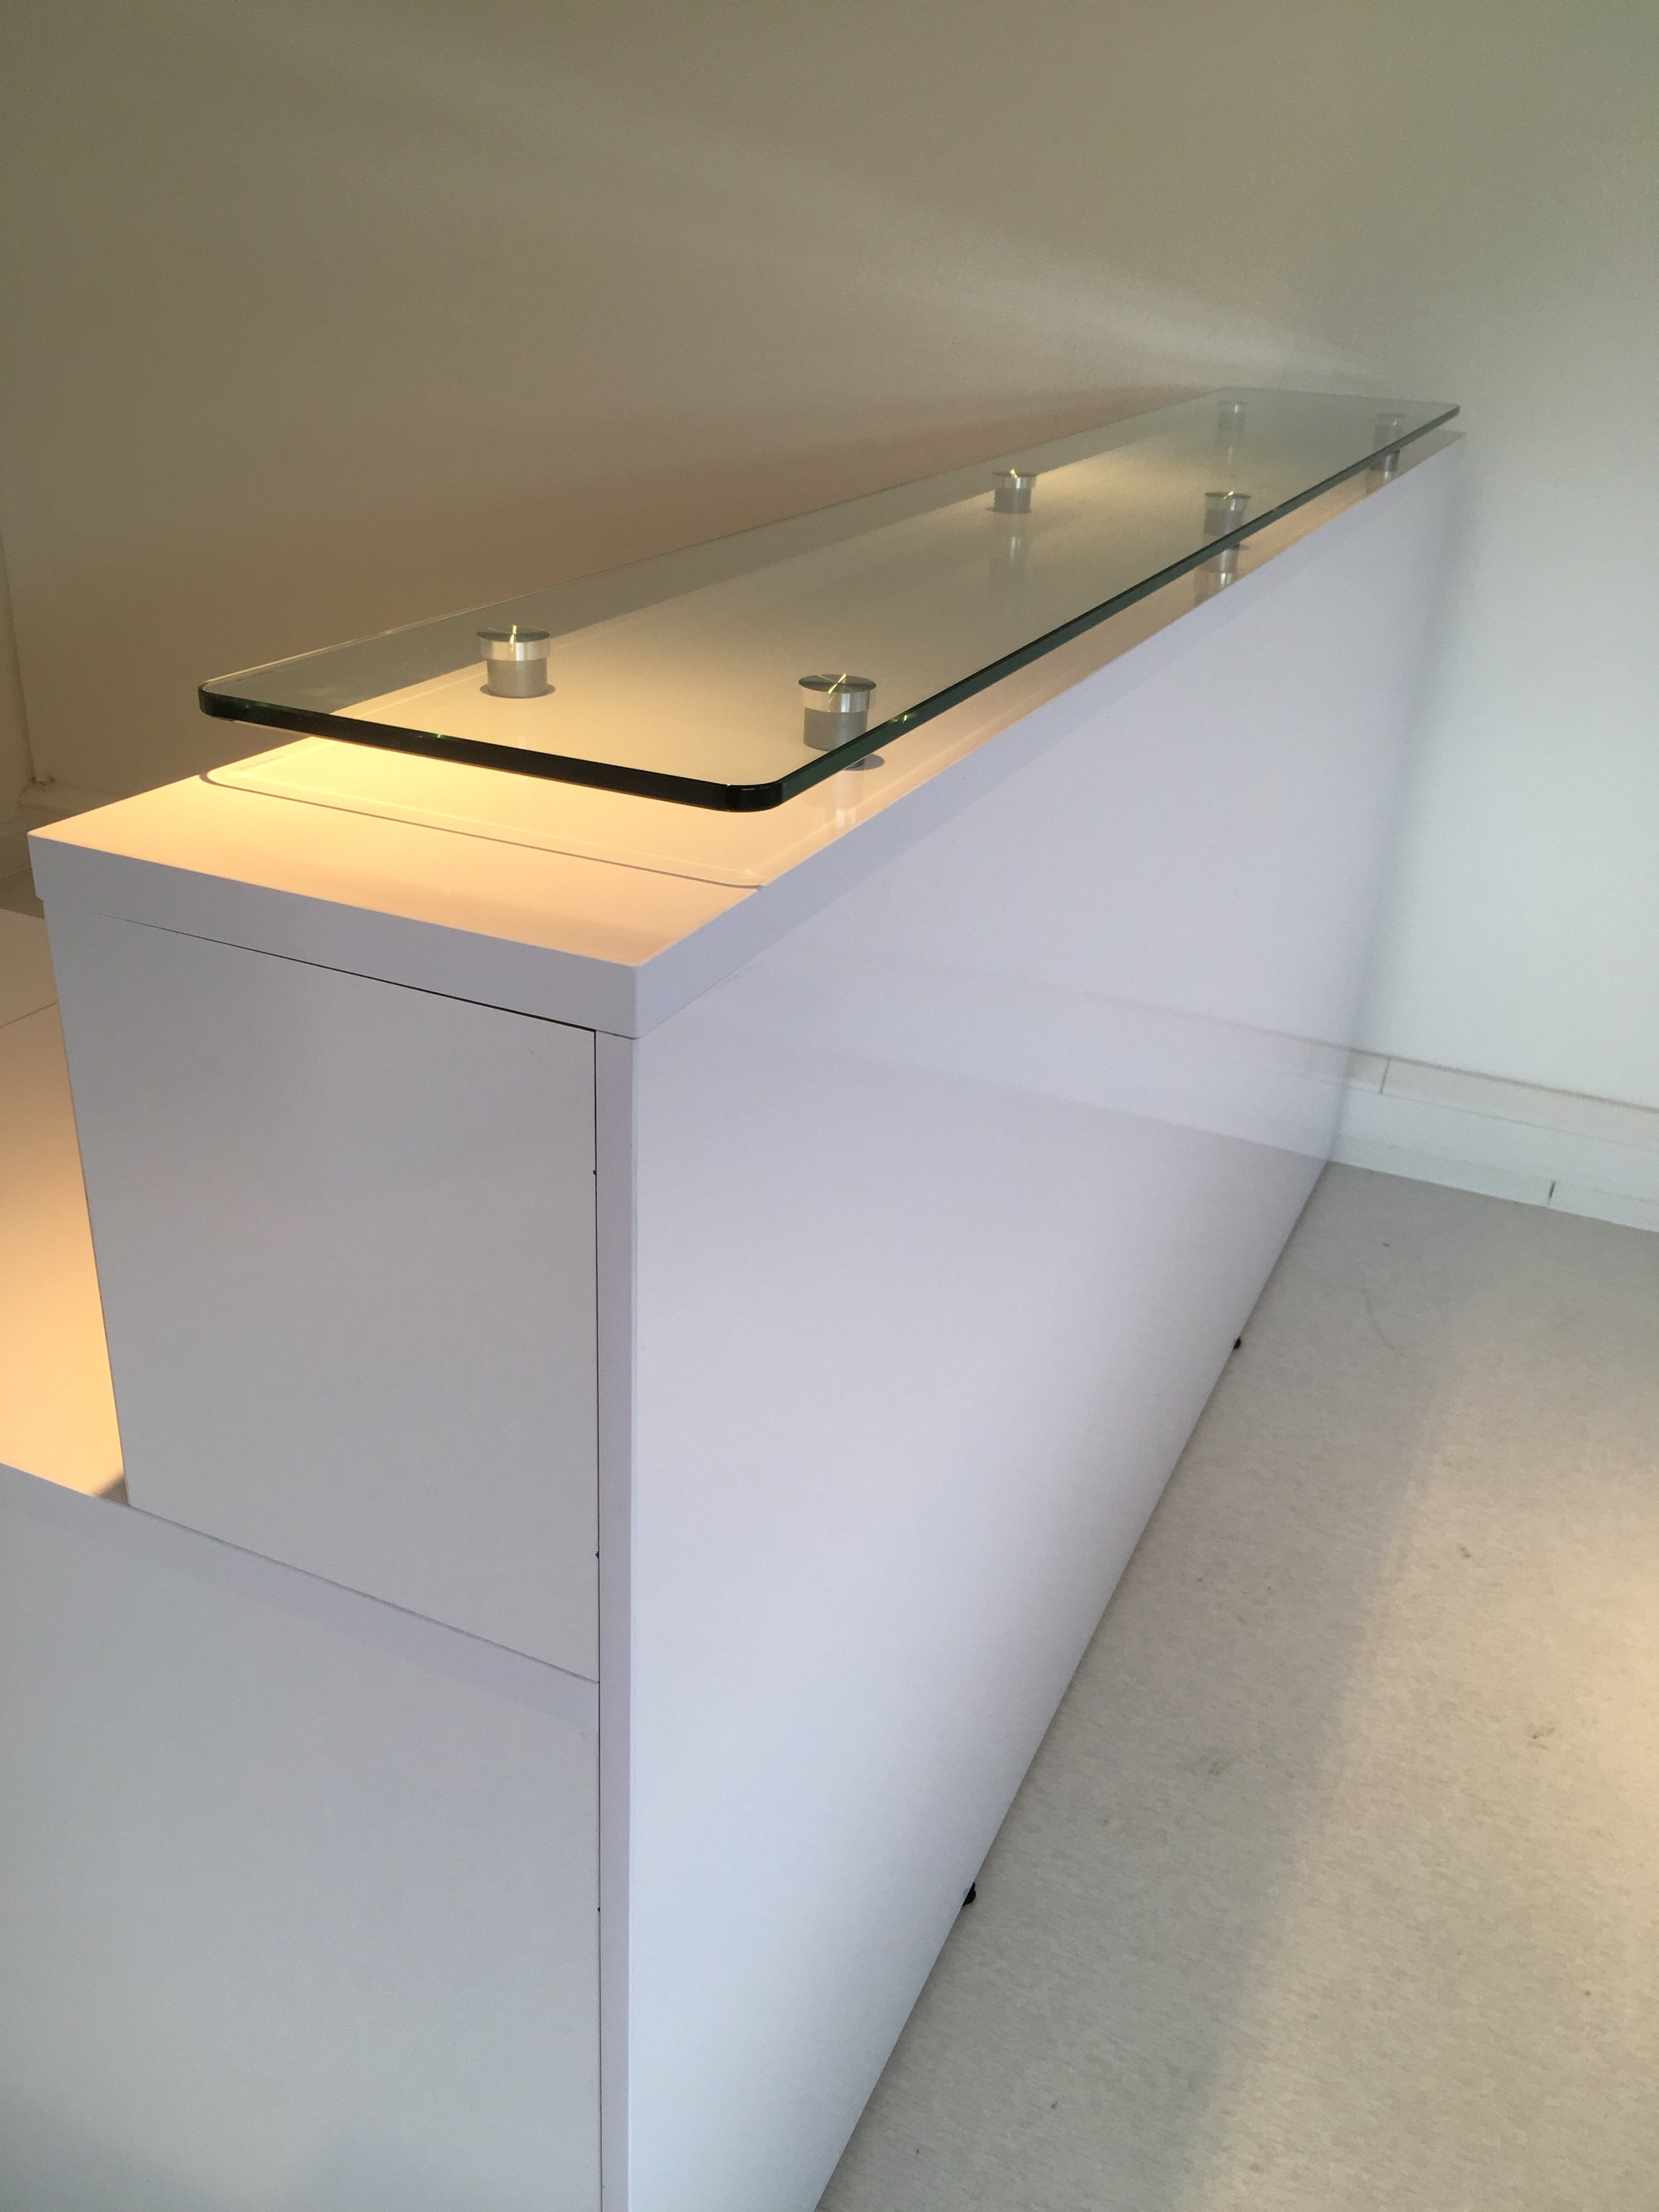 Office remodelling - design and refit - Littlehampton manufacturing sector-5